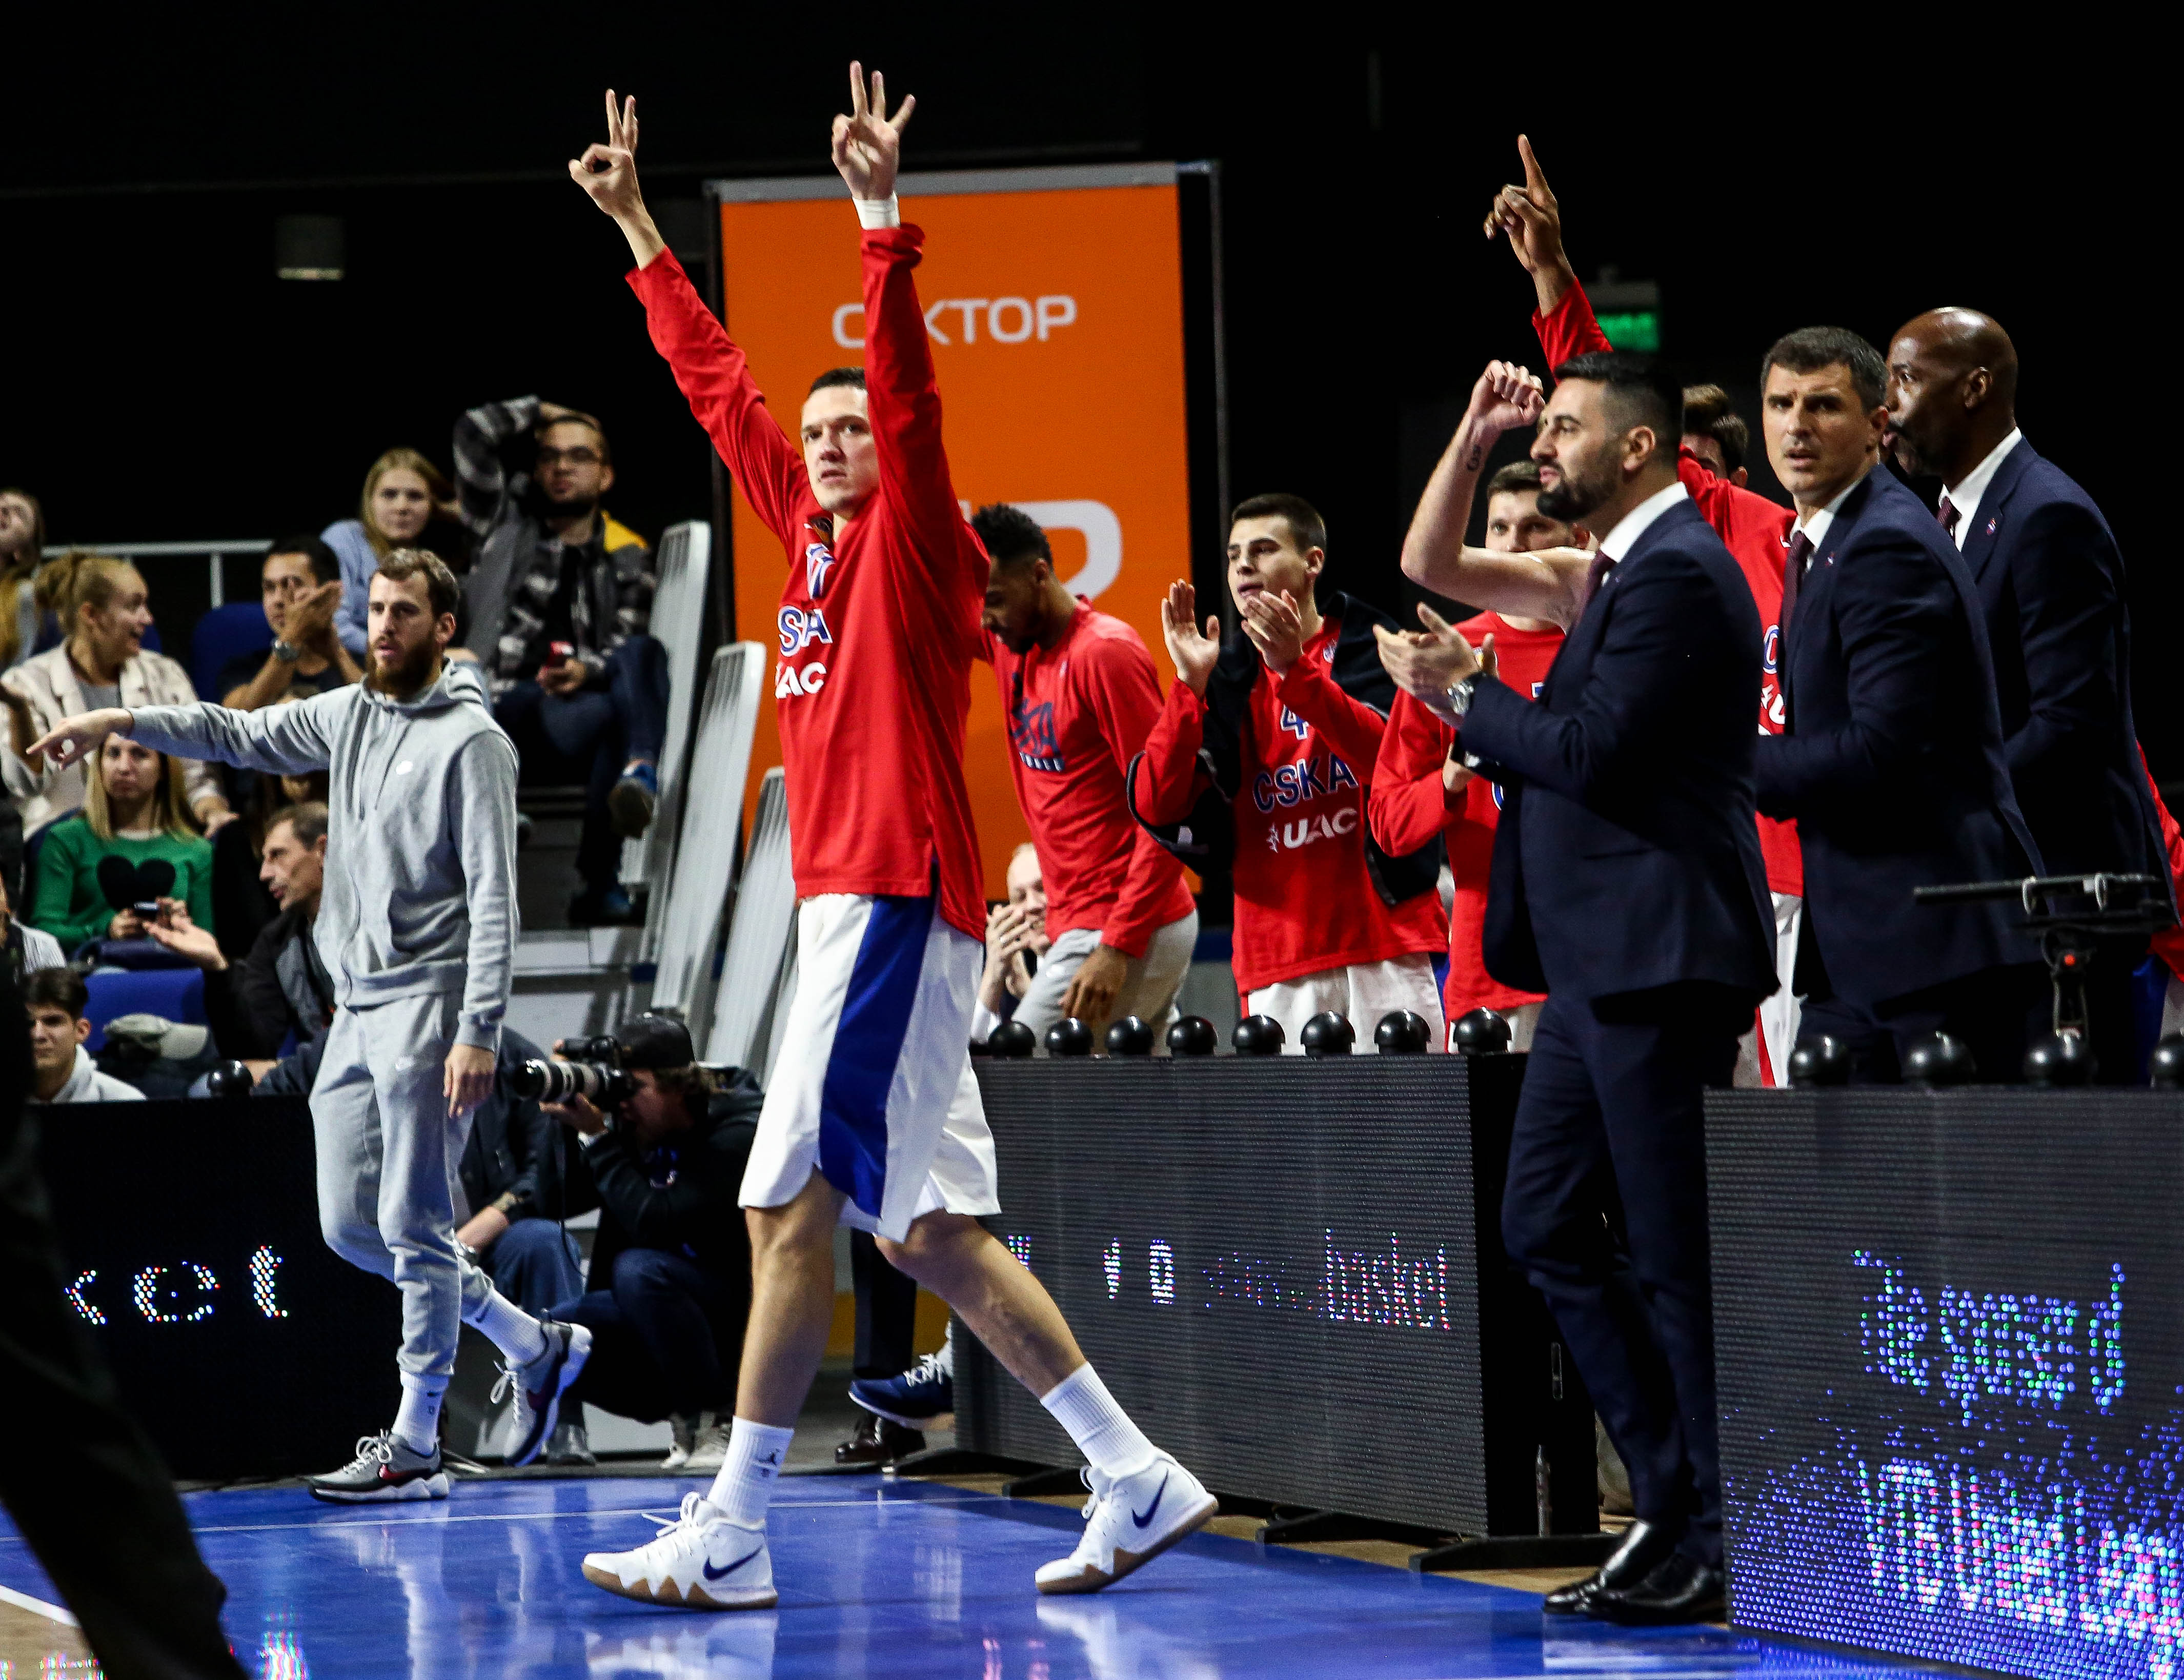 Week In Review: +50 From CSKA, Zielona Gora Wins Debut And Shved In MVP Form